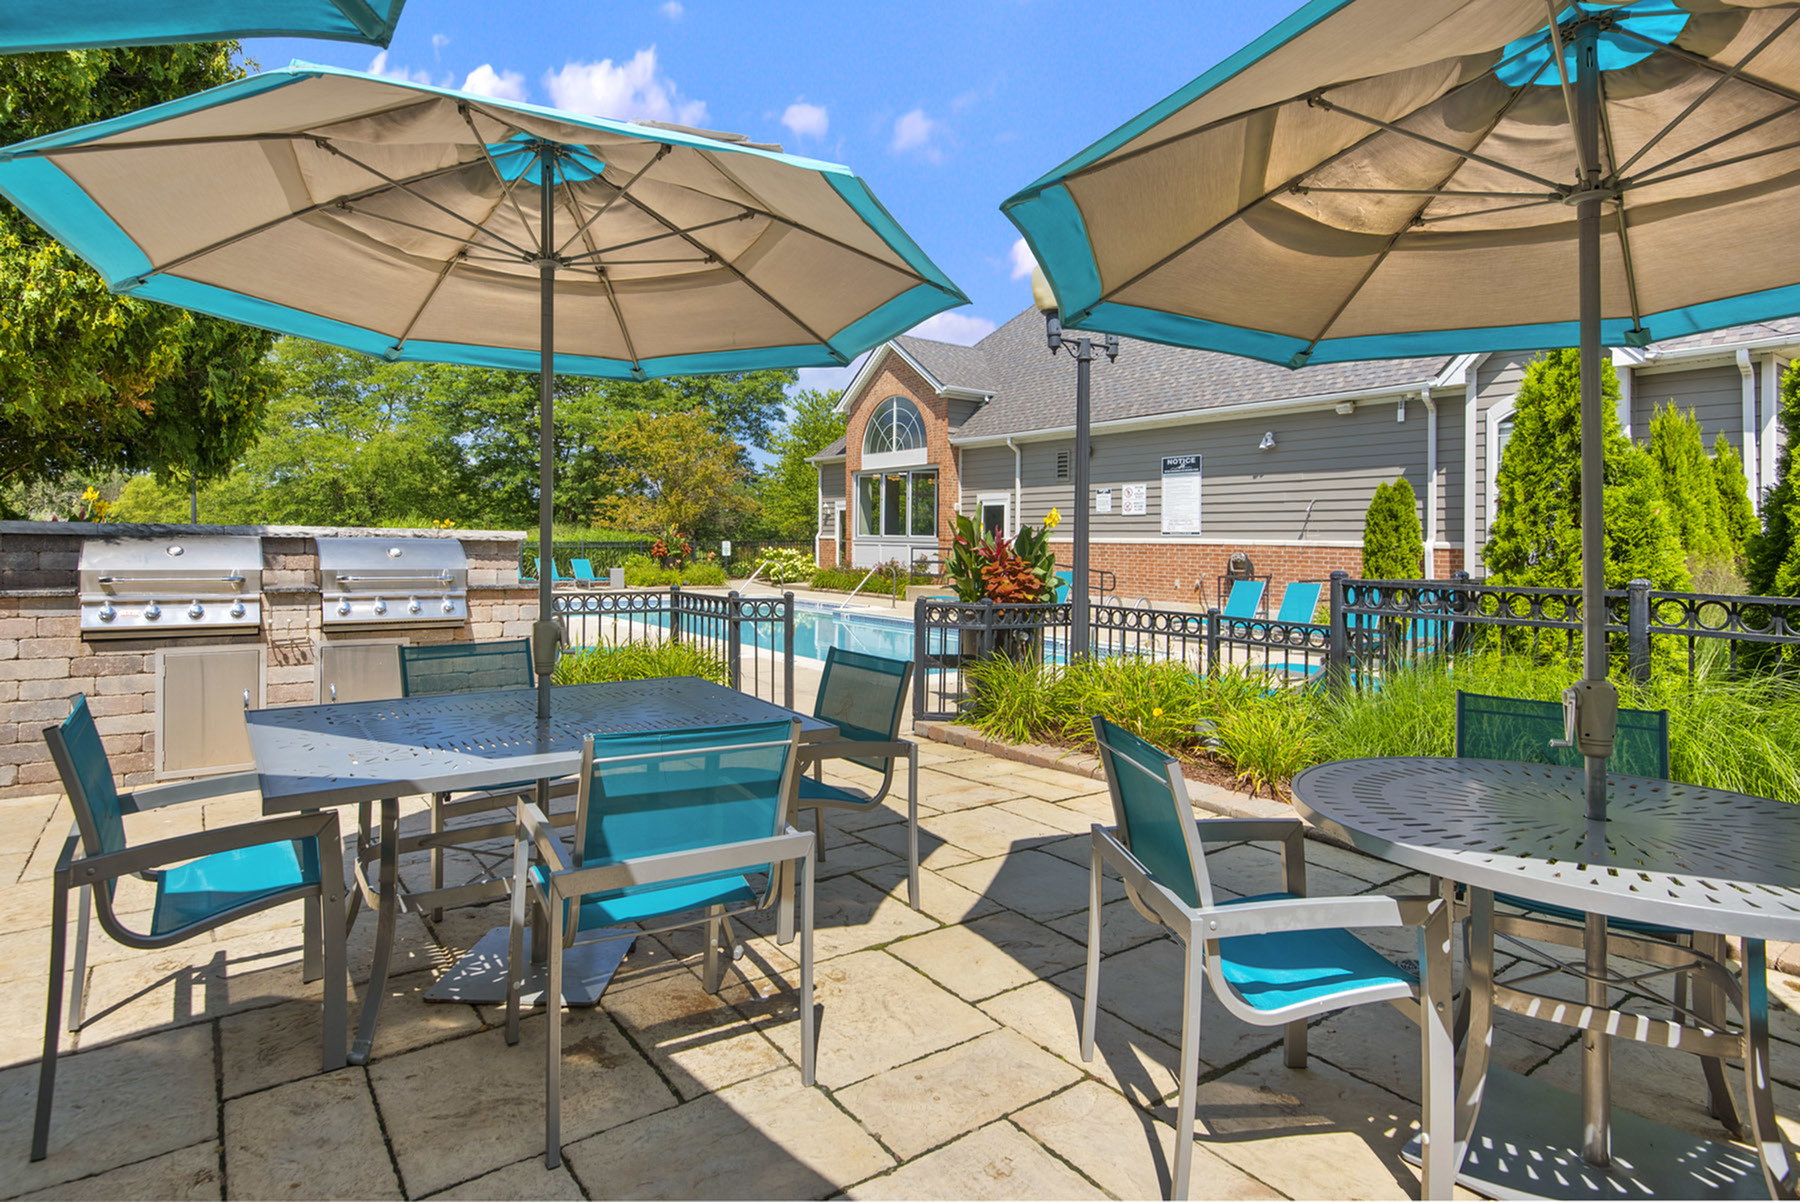 Sundeck and Outdoor Grilling Station